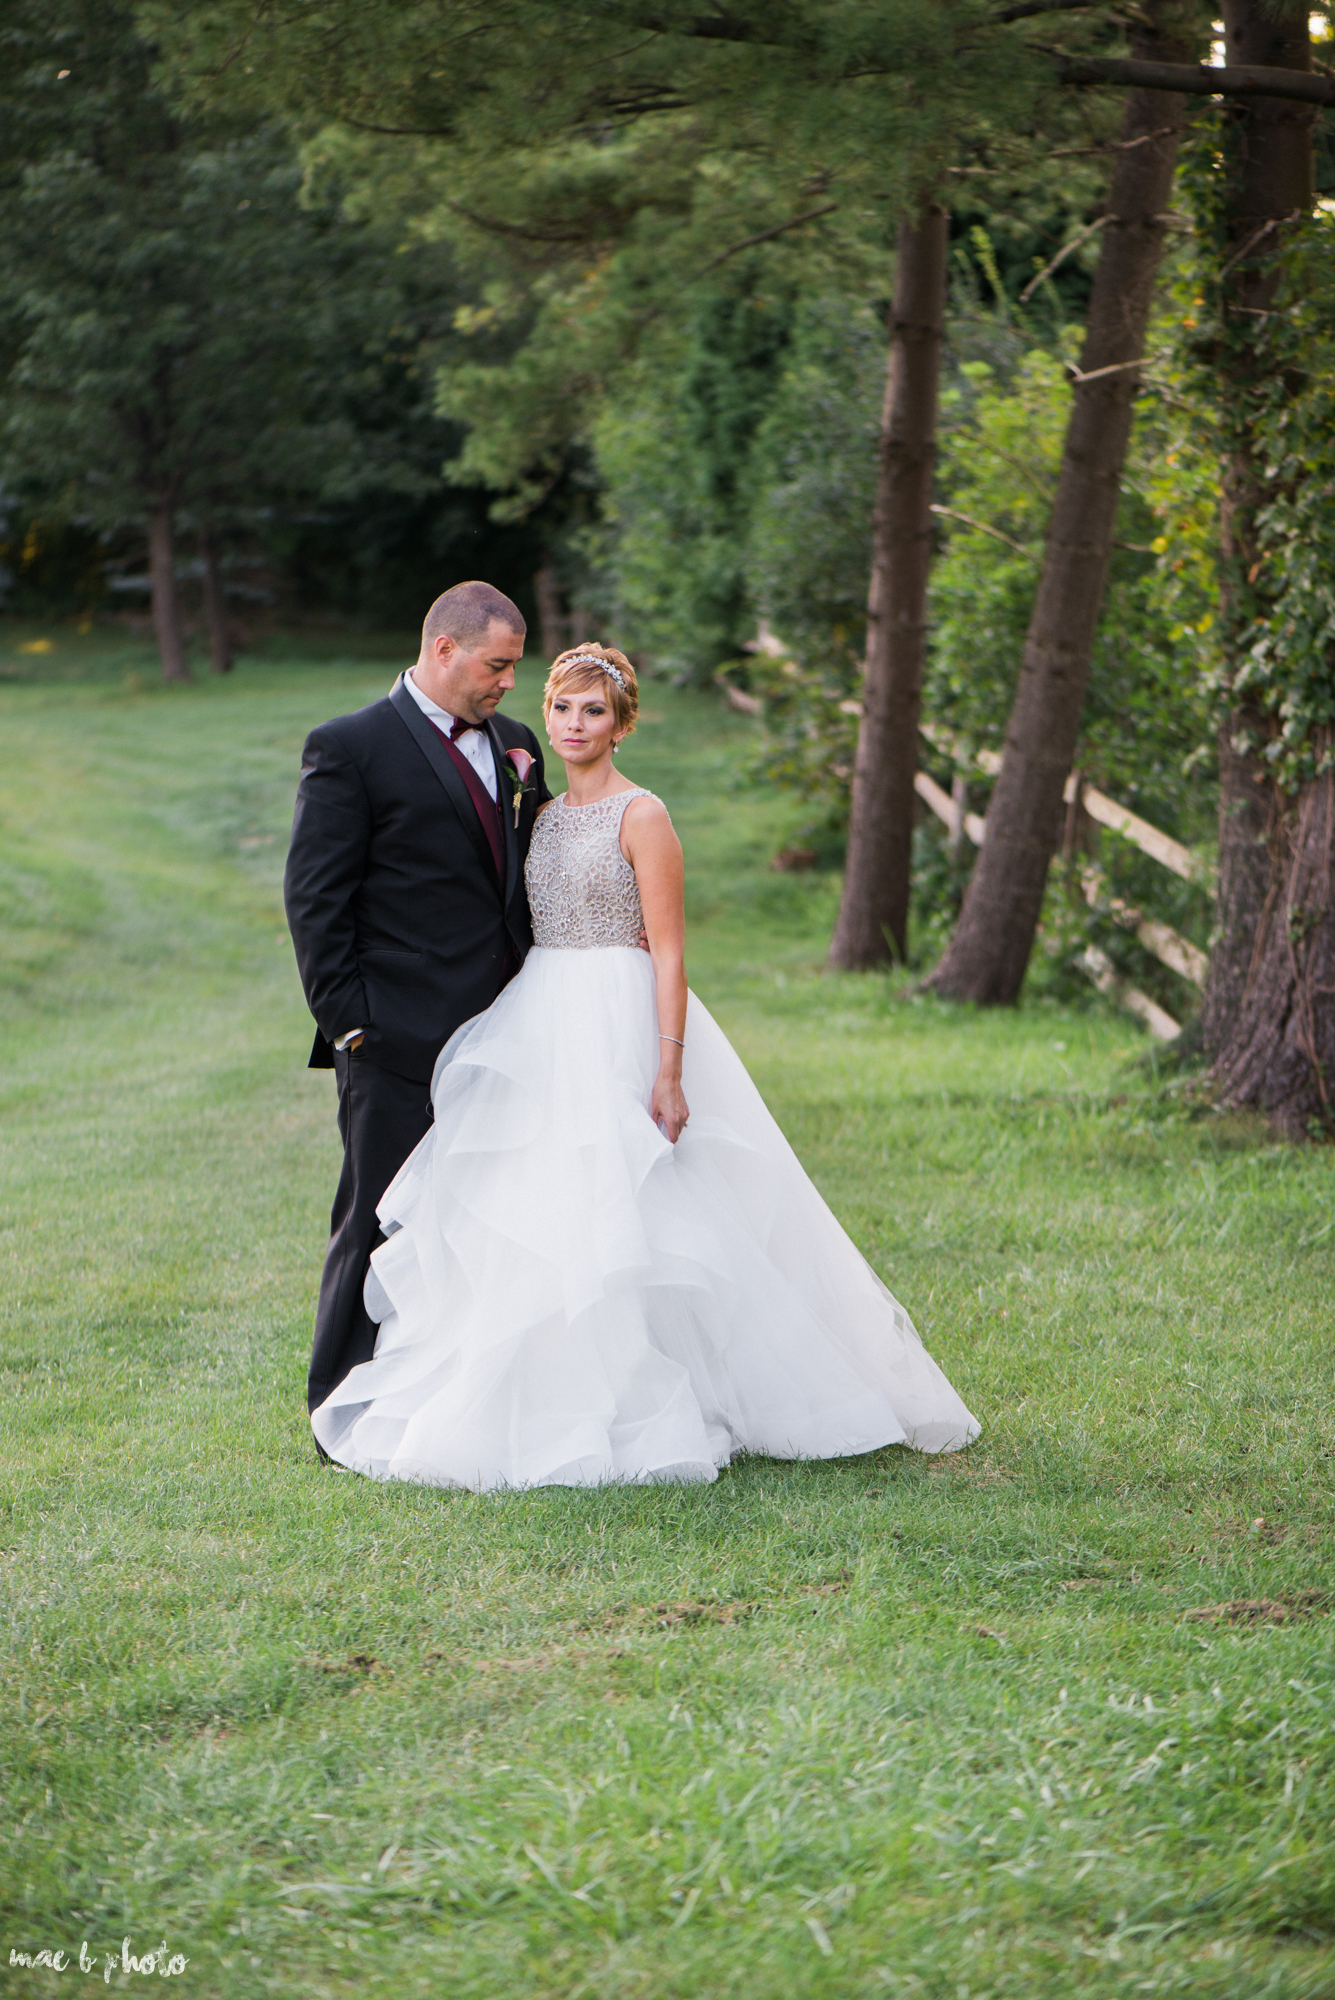 Mary Catherine & Chad's Elegant and Intimate Country Club Wedding at Squaw Creek in Youngstown Ohio by Mae B Photo-73.jpg